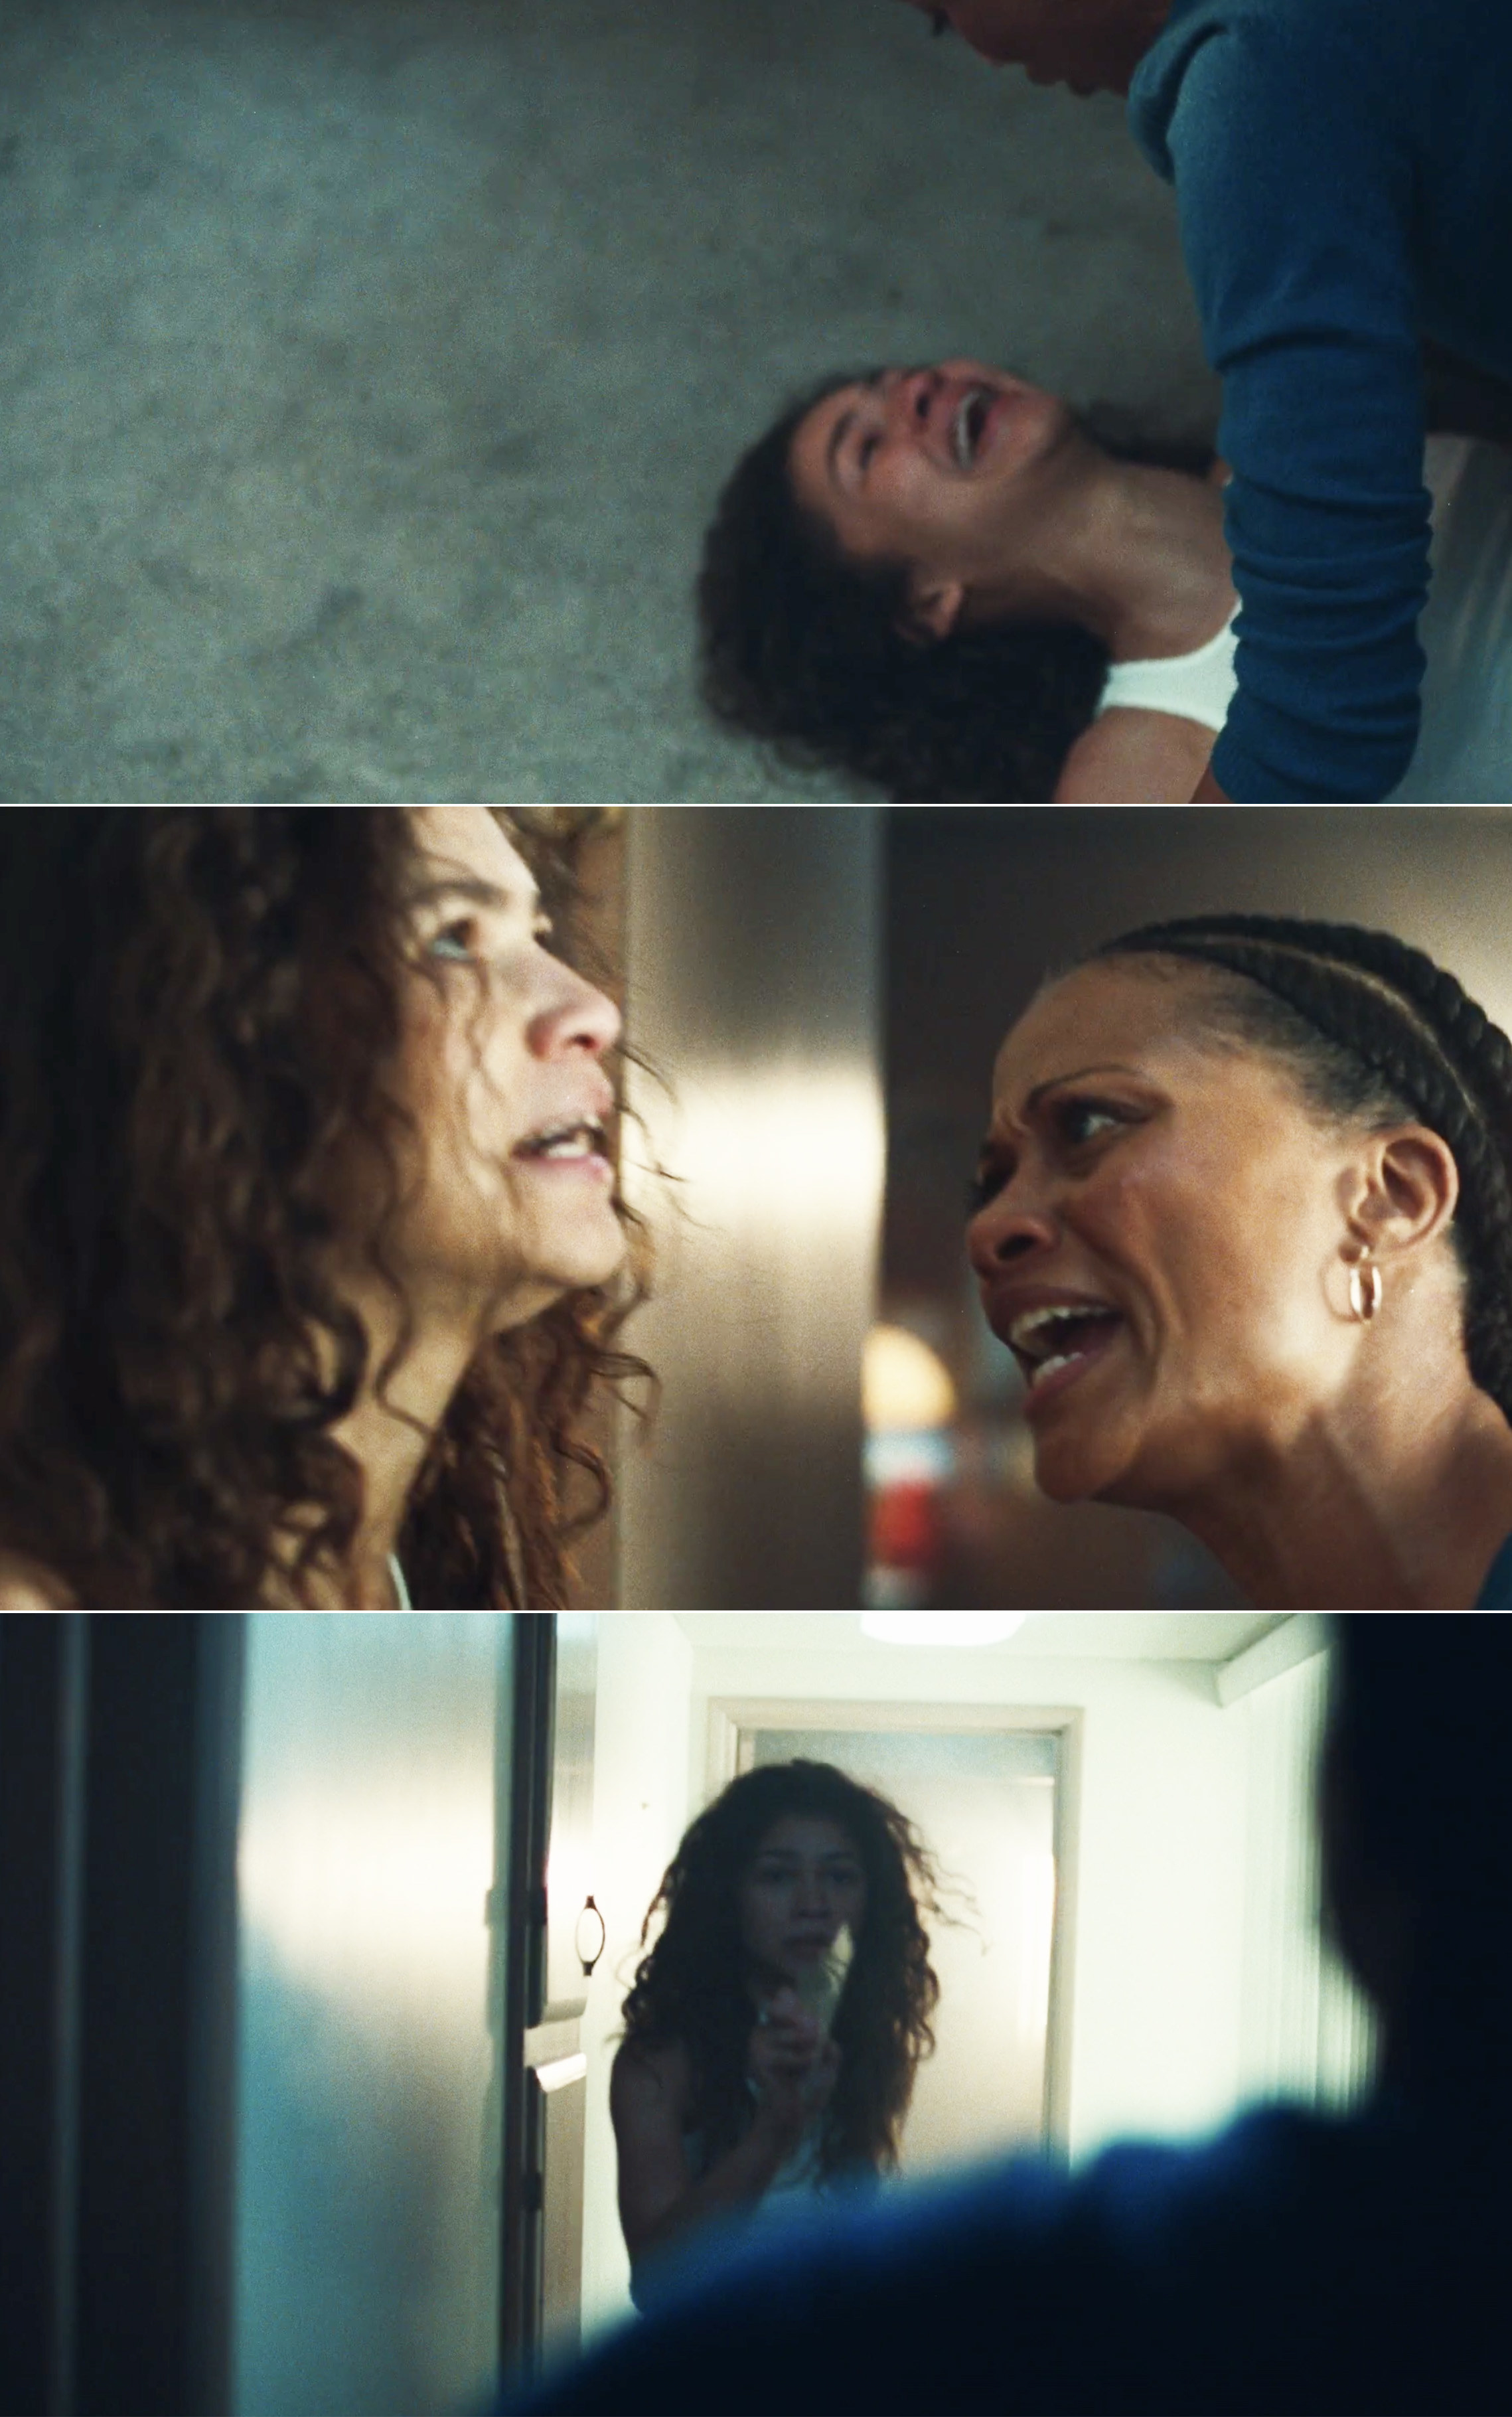 Rue and her mom fighting in the hallway and Rue's mom pinning her to the floor while she screams and cries